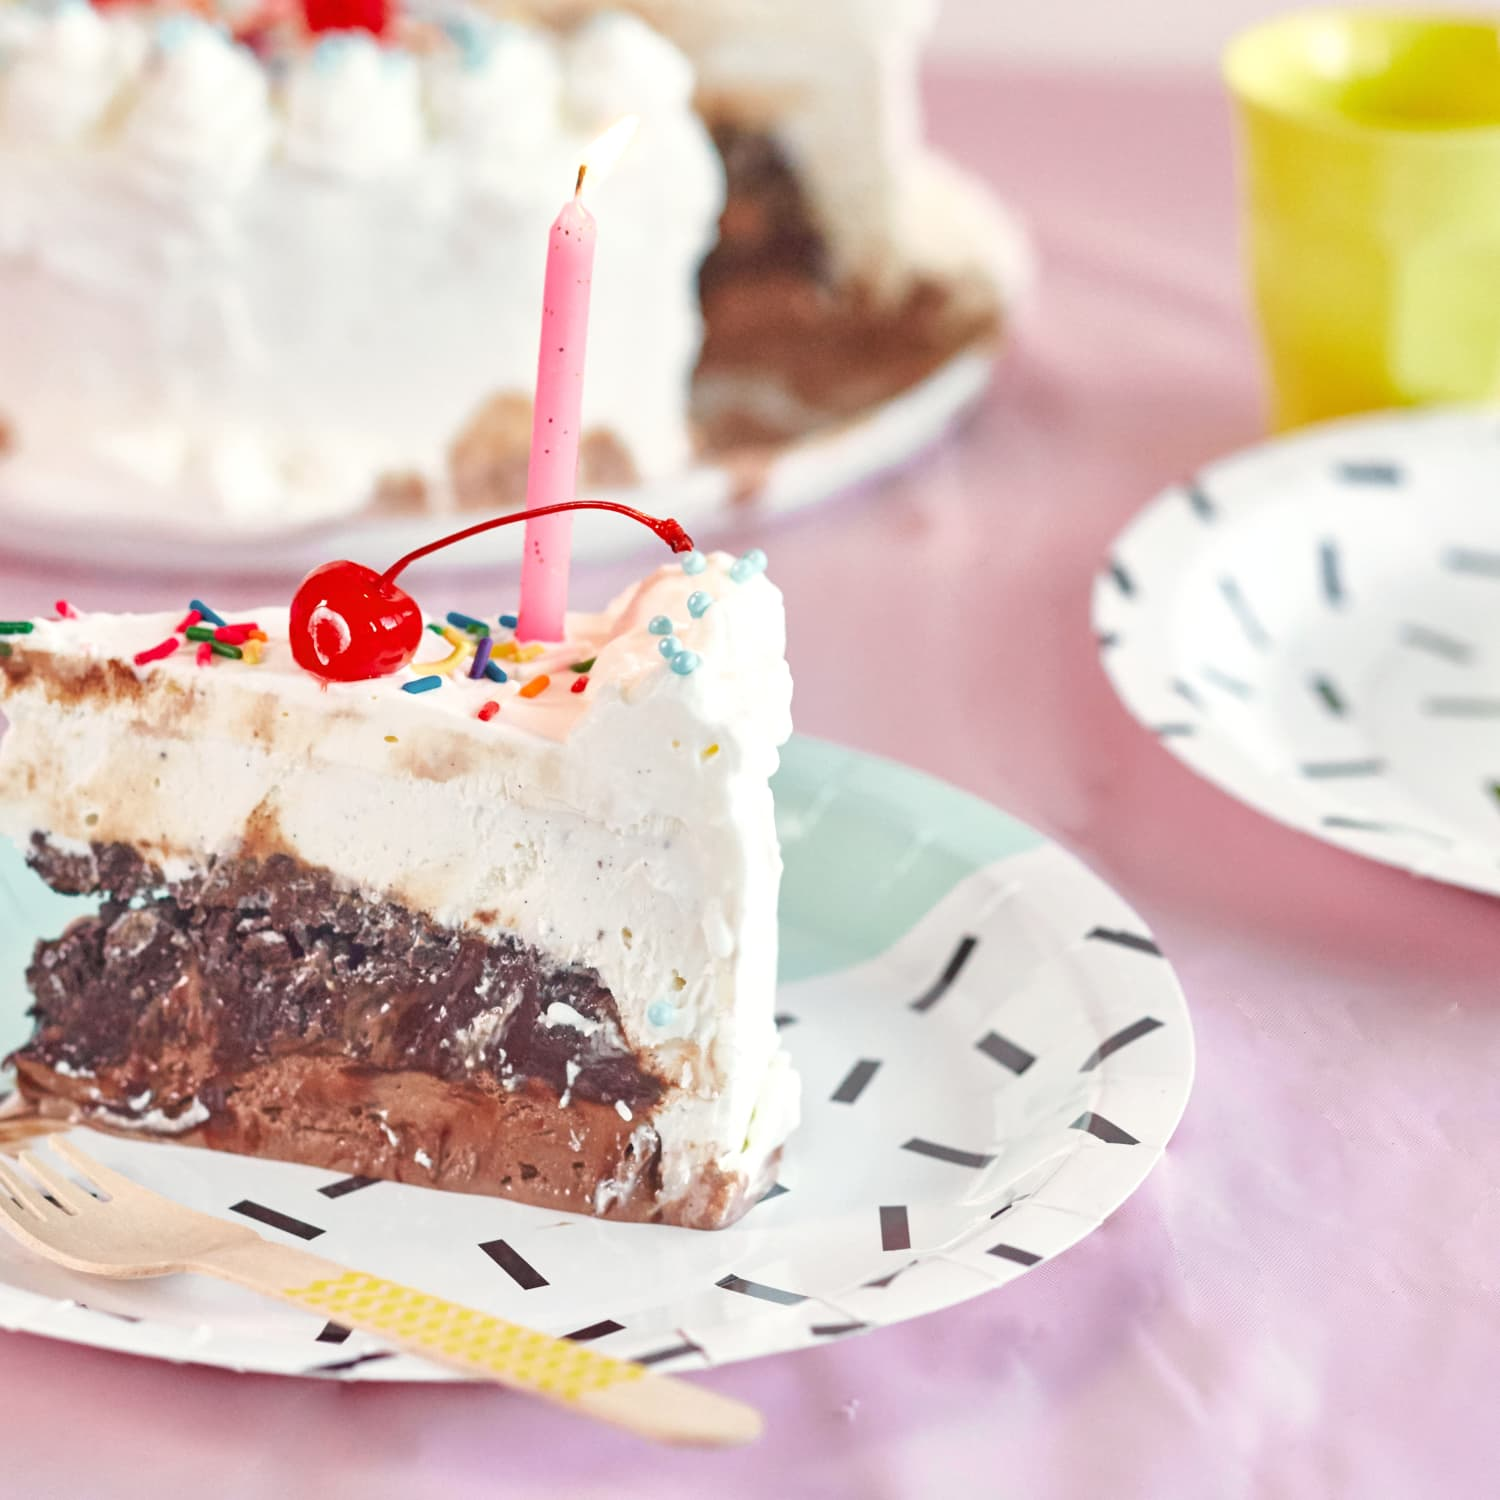 Who Makes the Best Ice Cream Cake?